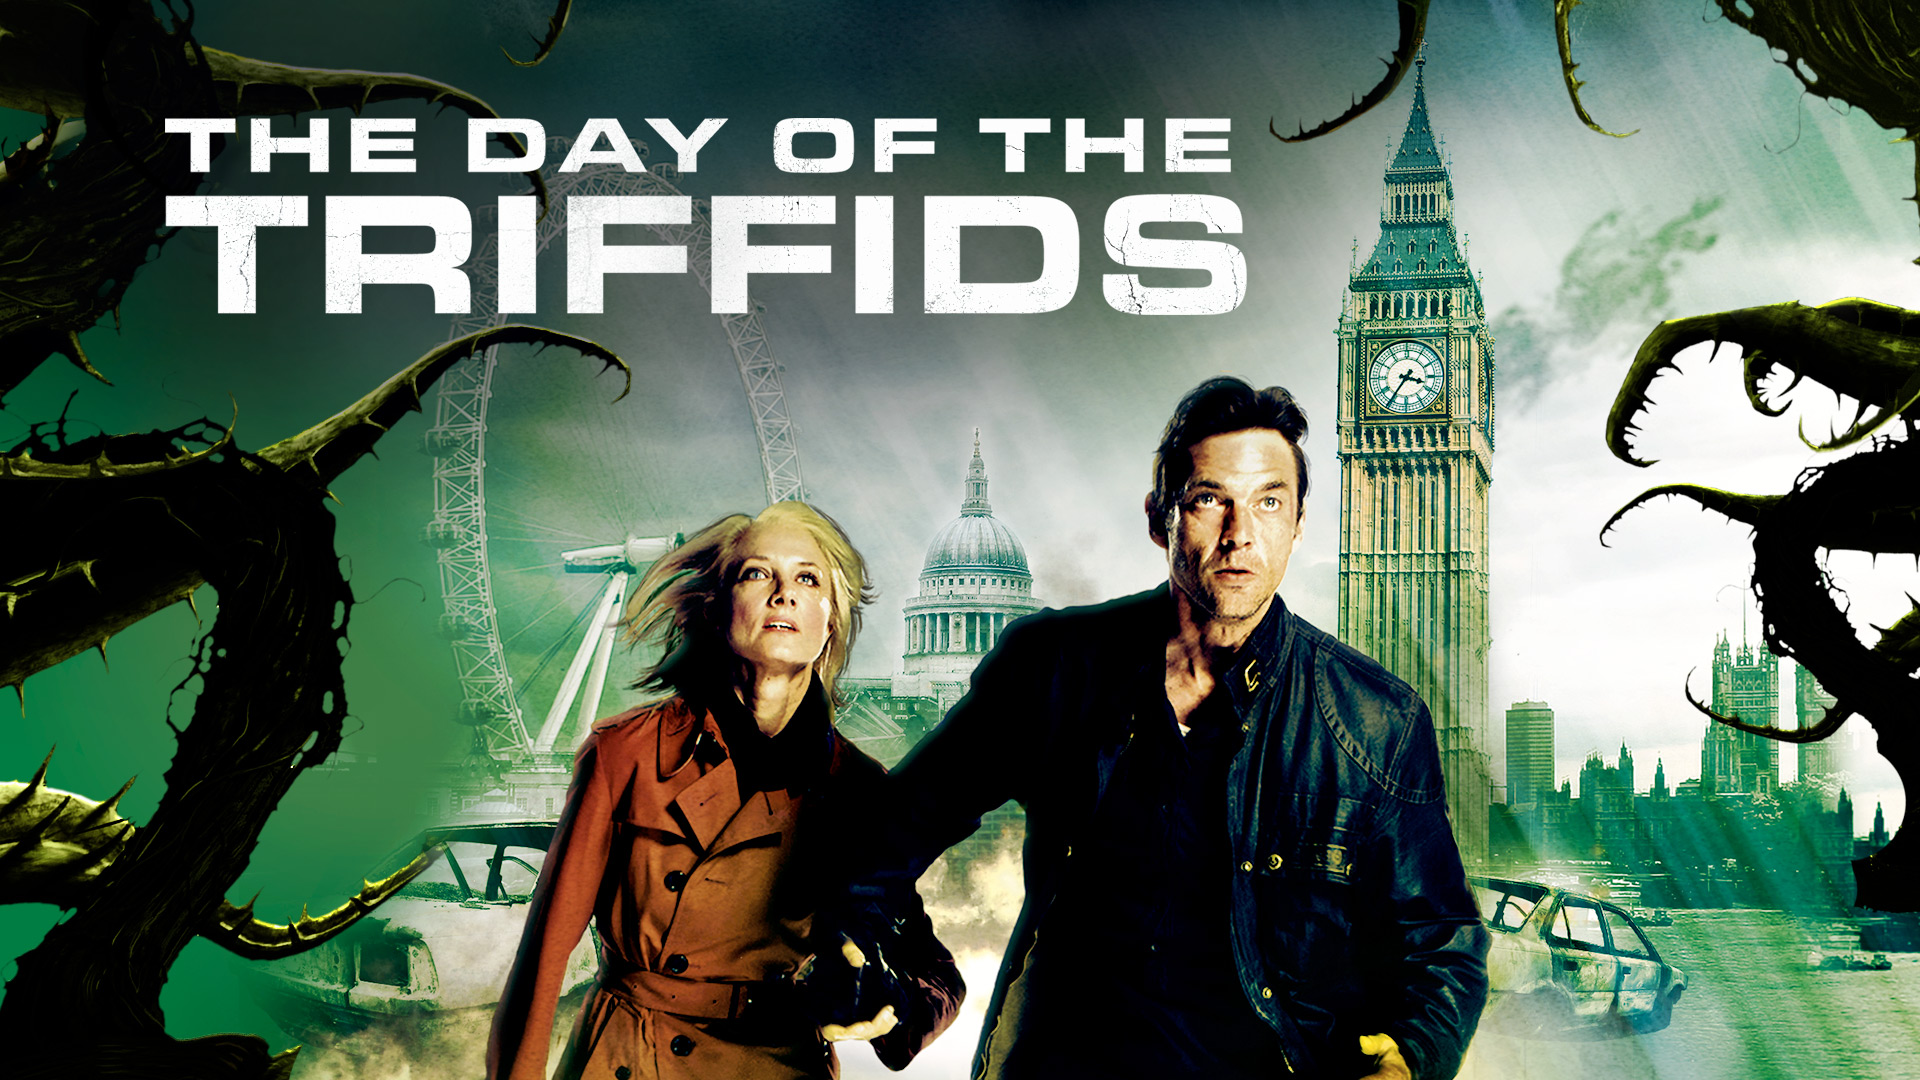 The Day of the Triffids - Season 1